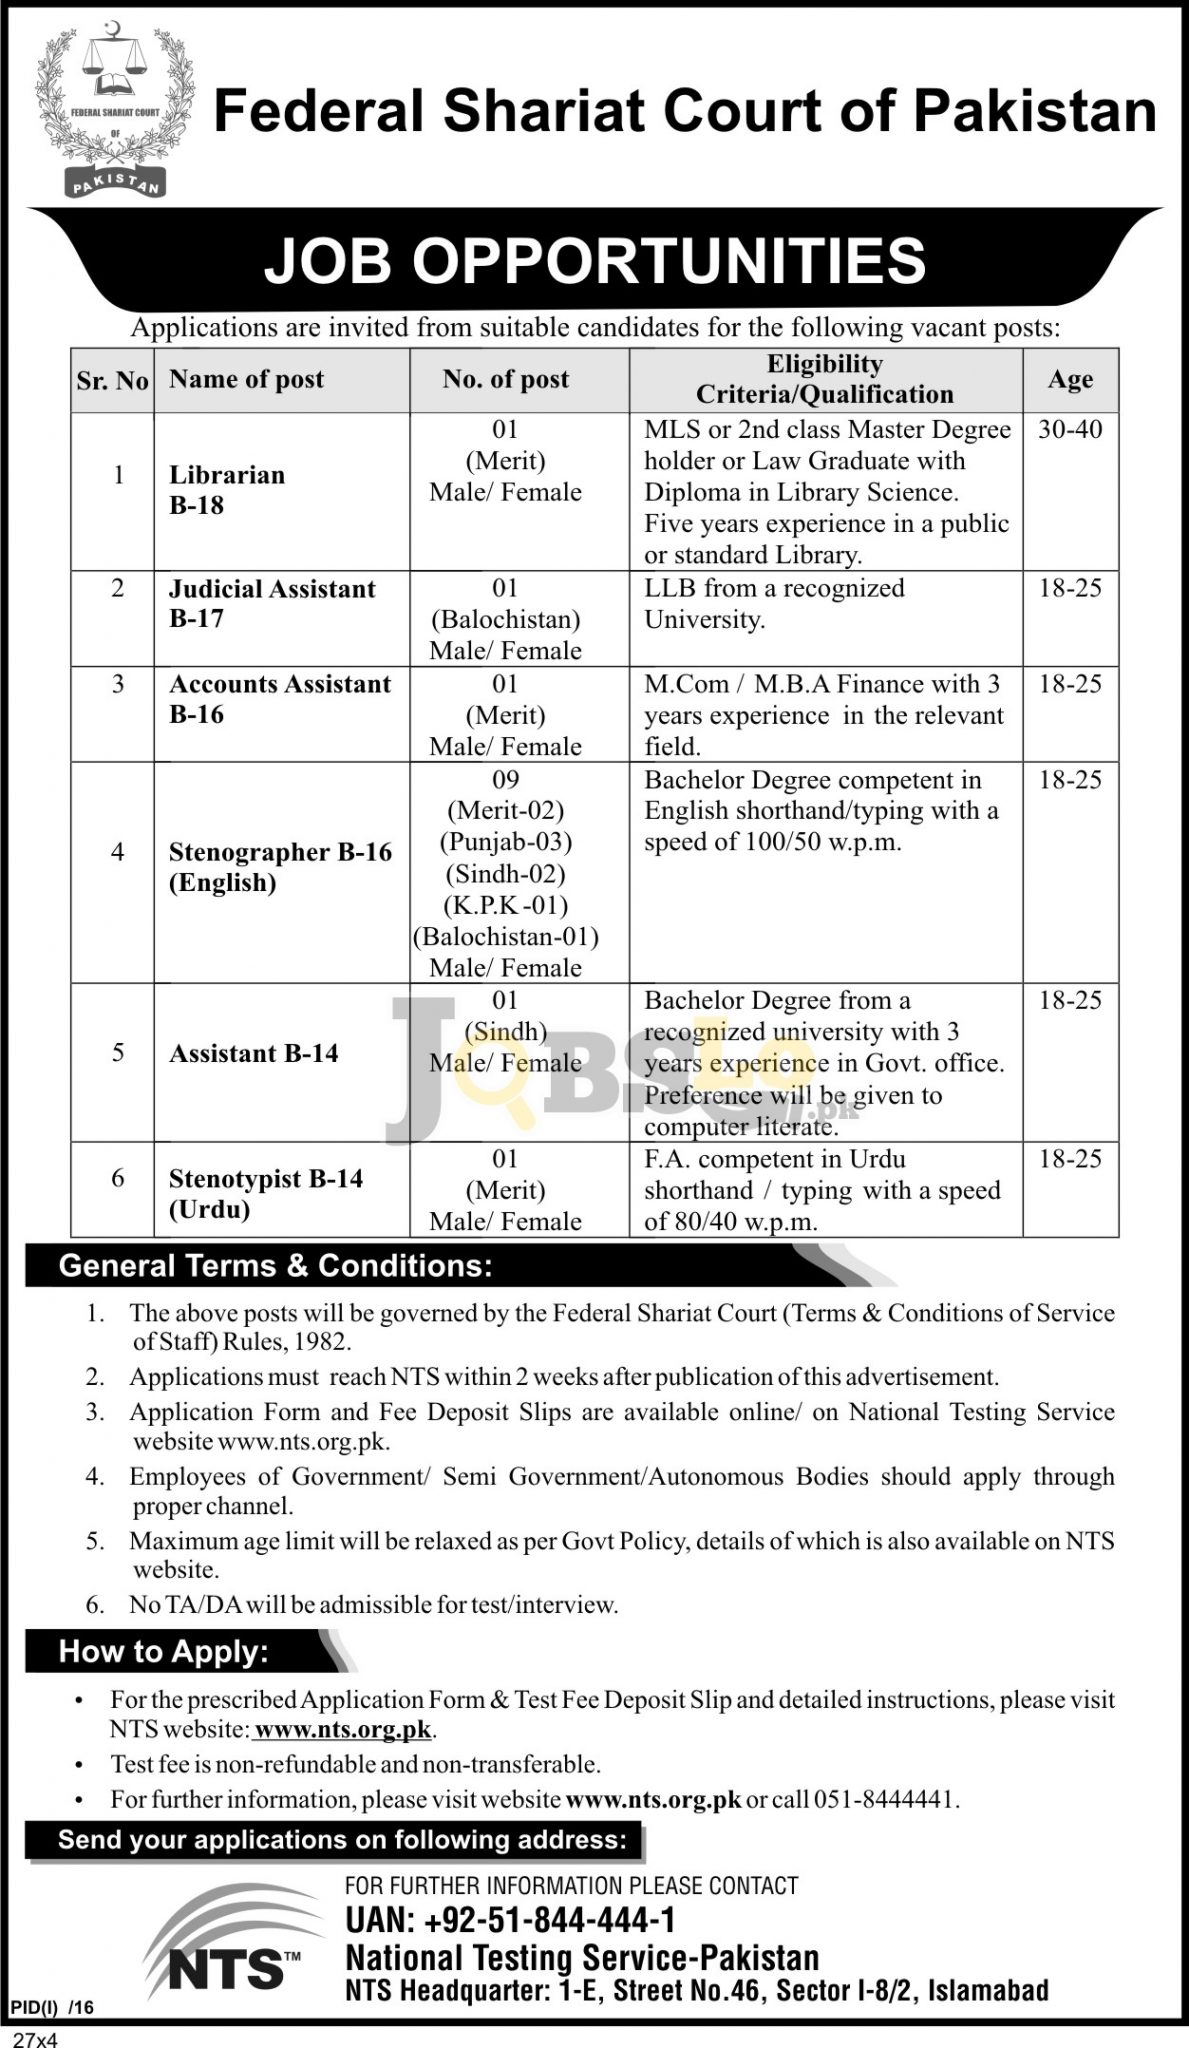 Federal Shariat Court Jobs